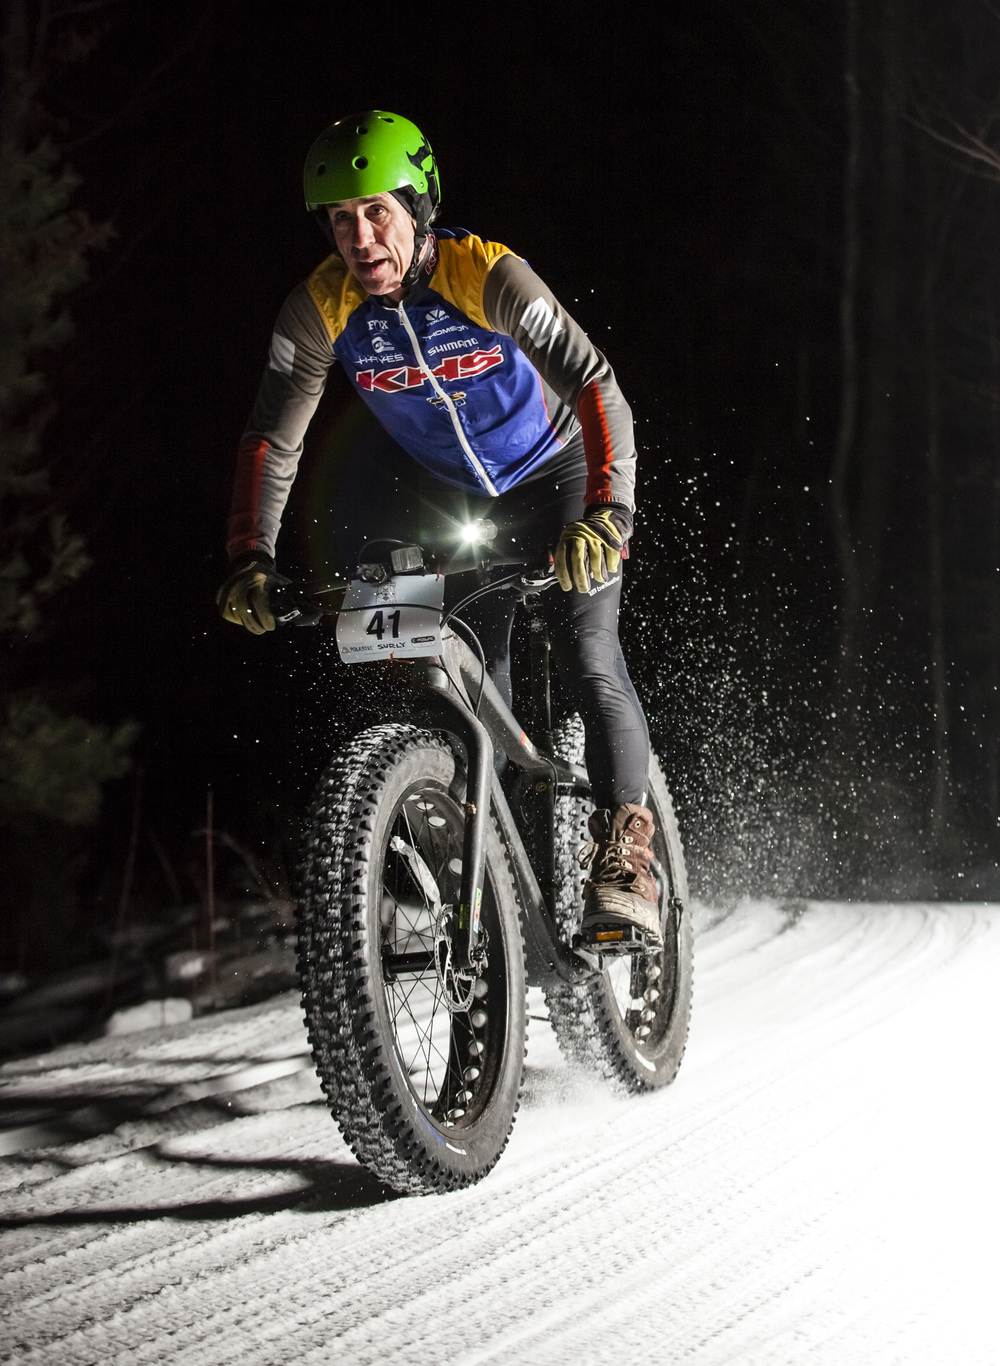 A rider spraying snow at the Polartec Winter Fat Bike Series